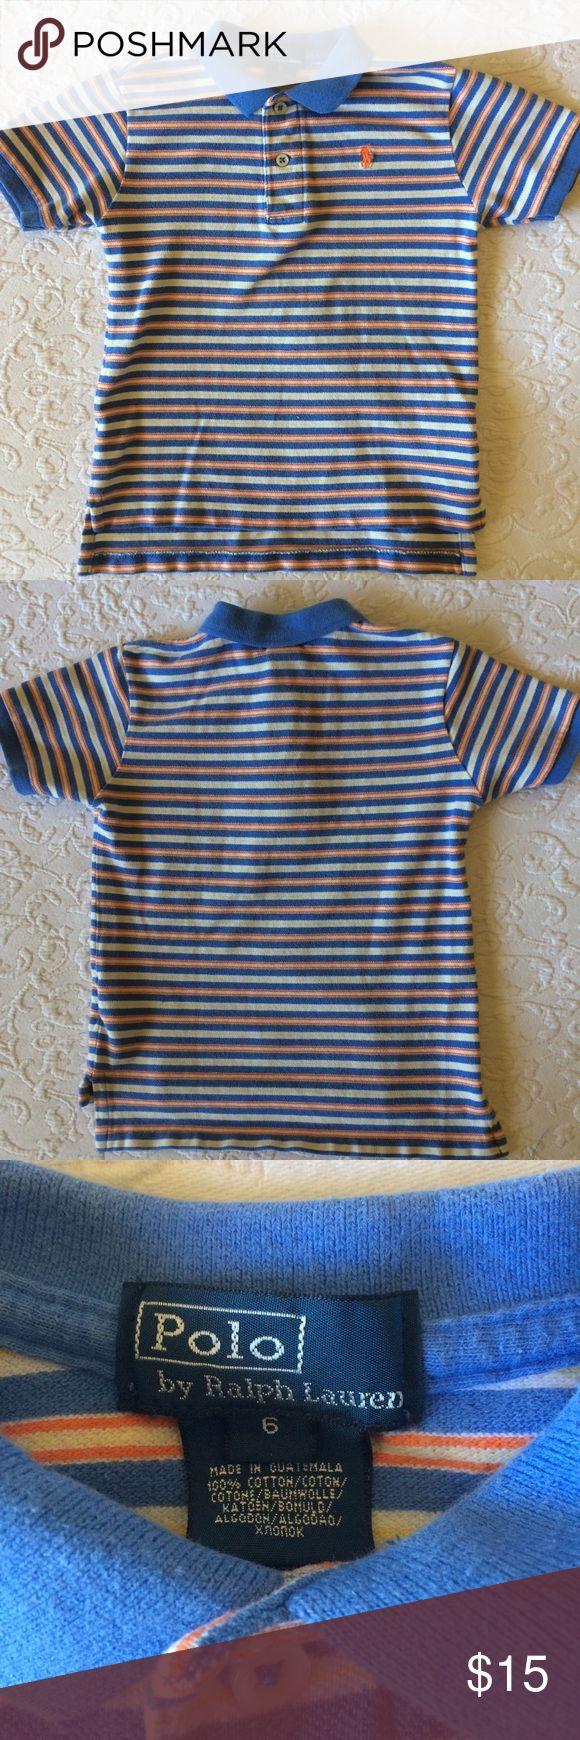 Boys Ralph Lauren striped pique polo shirt In excellent used condition! Ralph Lauren Shirts & Tops Polos